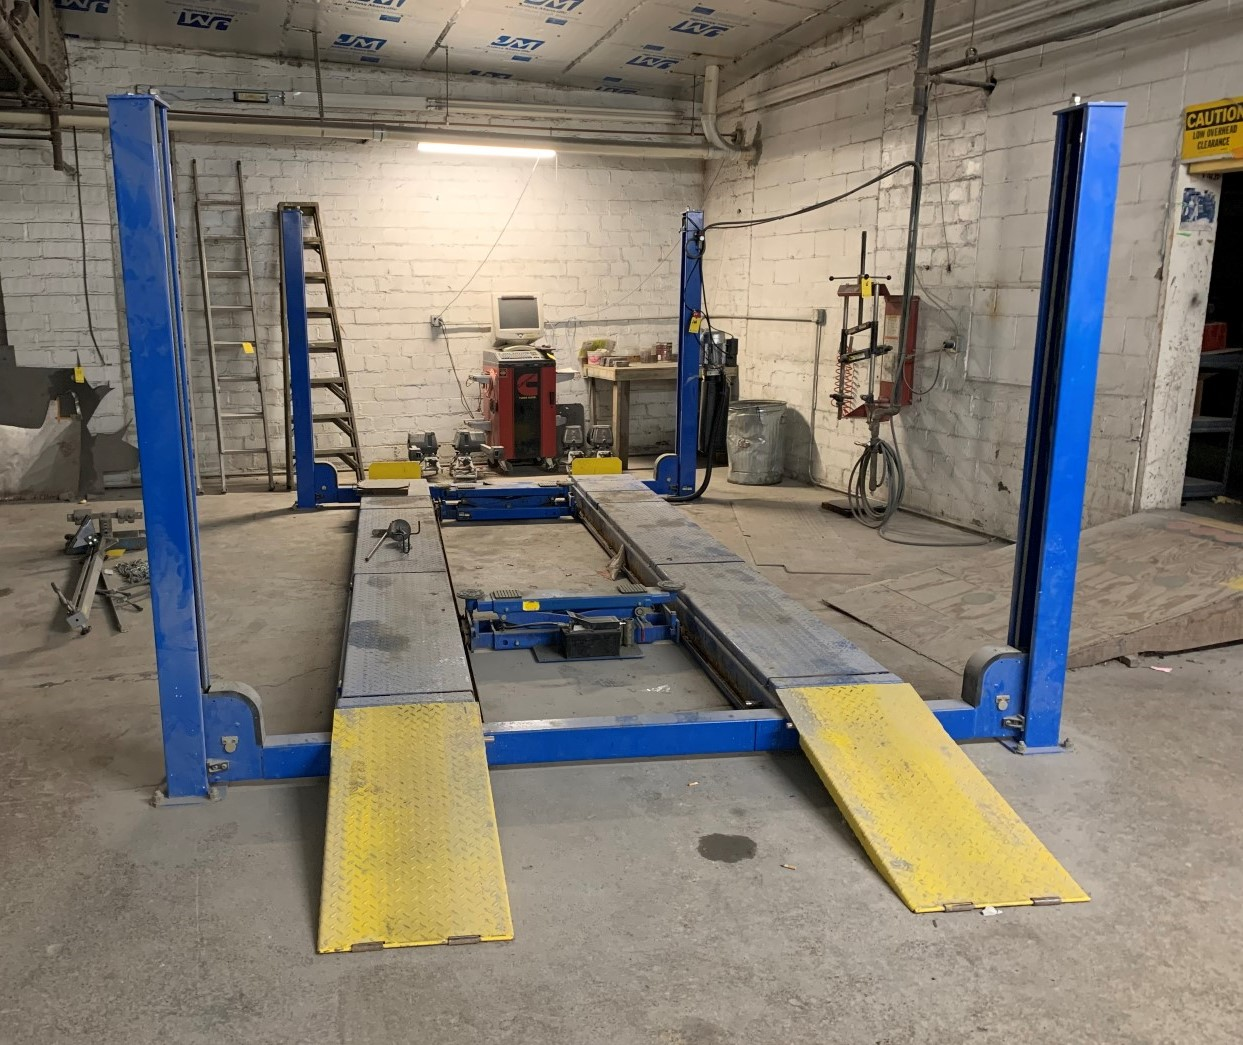 Auto Body Shop Equipment Online Auction In Broad Ripple, IN